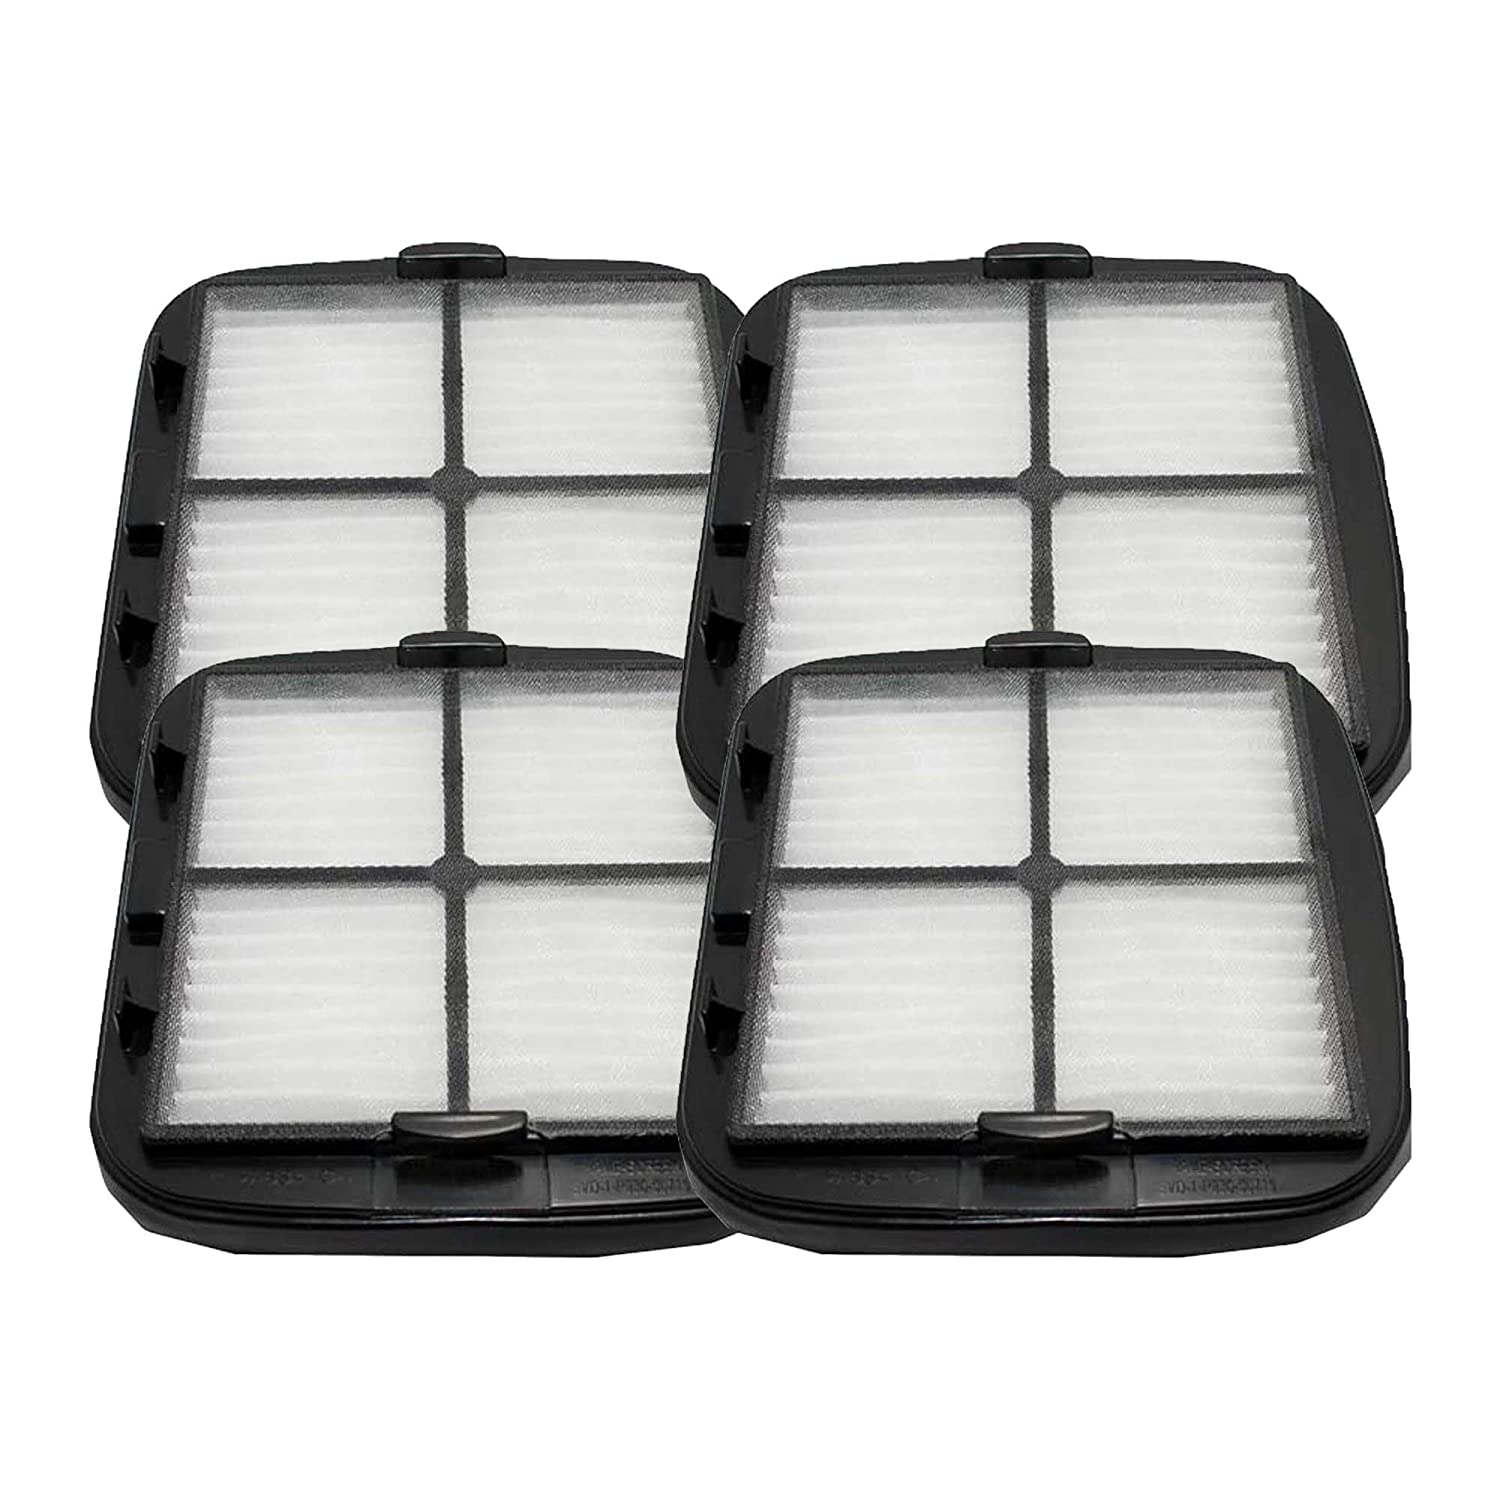 4 Bissell Hand Vac HEPA Filter and Filter Screen Fits Bissell Hand Vac Auto-Mate Pet Hair CleanView Vacuum Models 27K6, 33A1B, 47R5A, 47R5B, 33A1, 47R5, 47R51, Part # 203-7416, 203-1432, 2037416, 2031432, Designed and Engineered by Crucial Vacuum Bissell 2